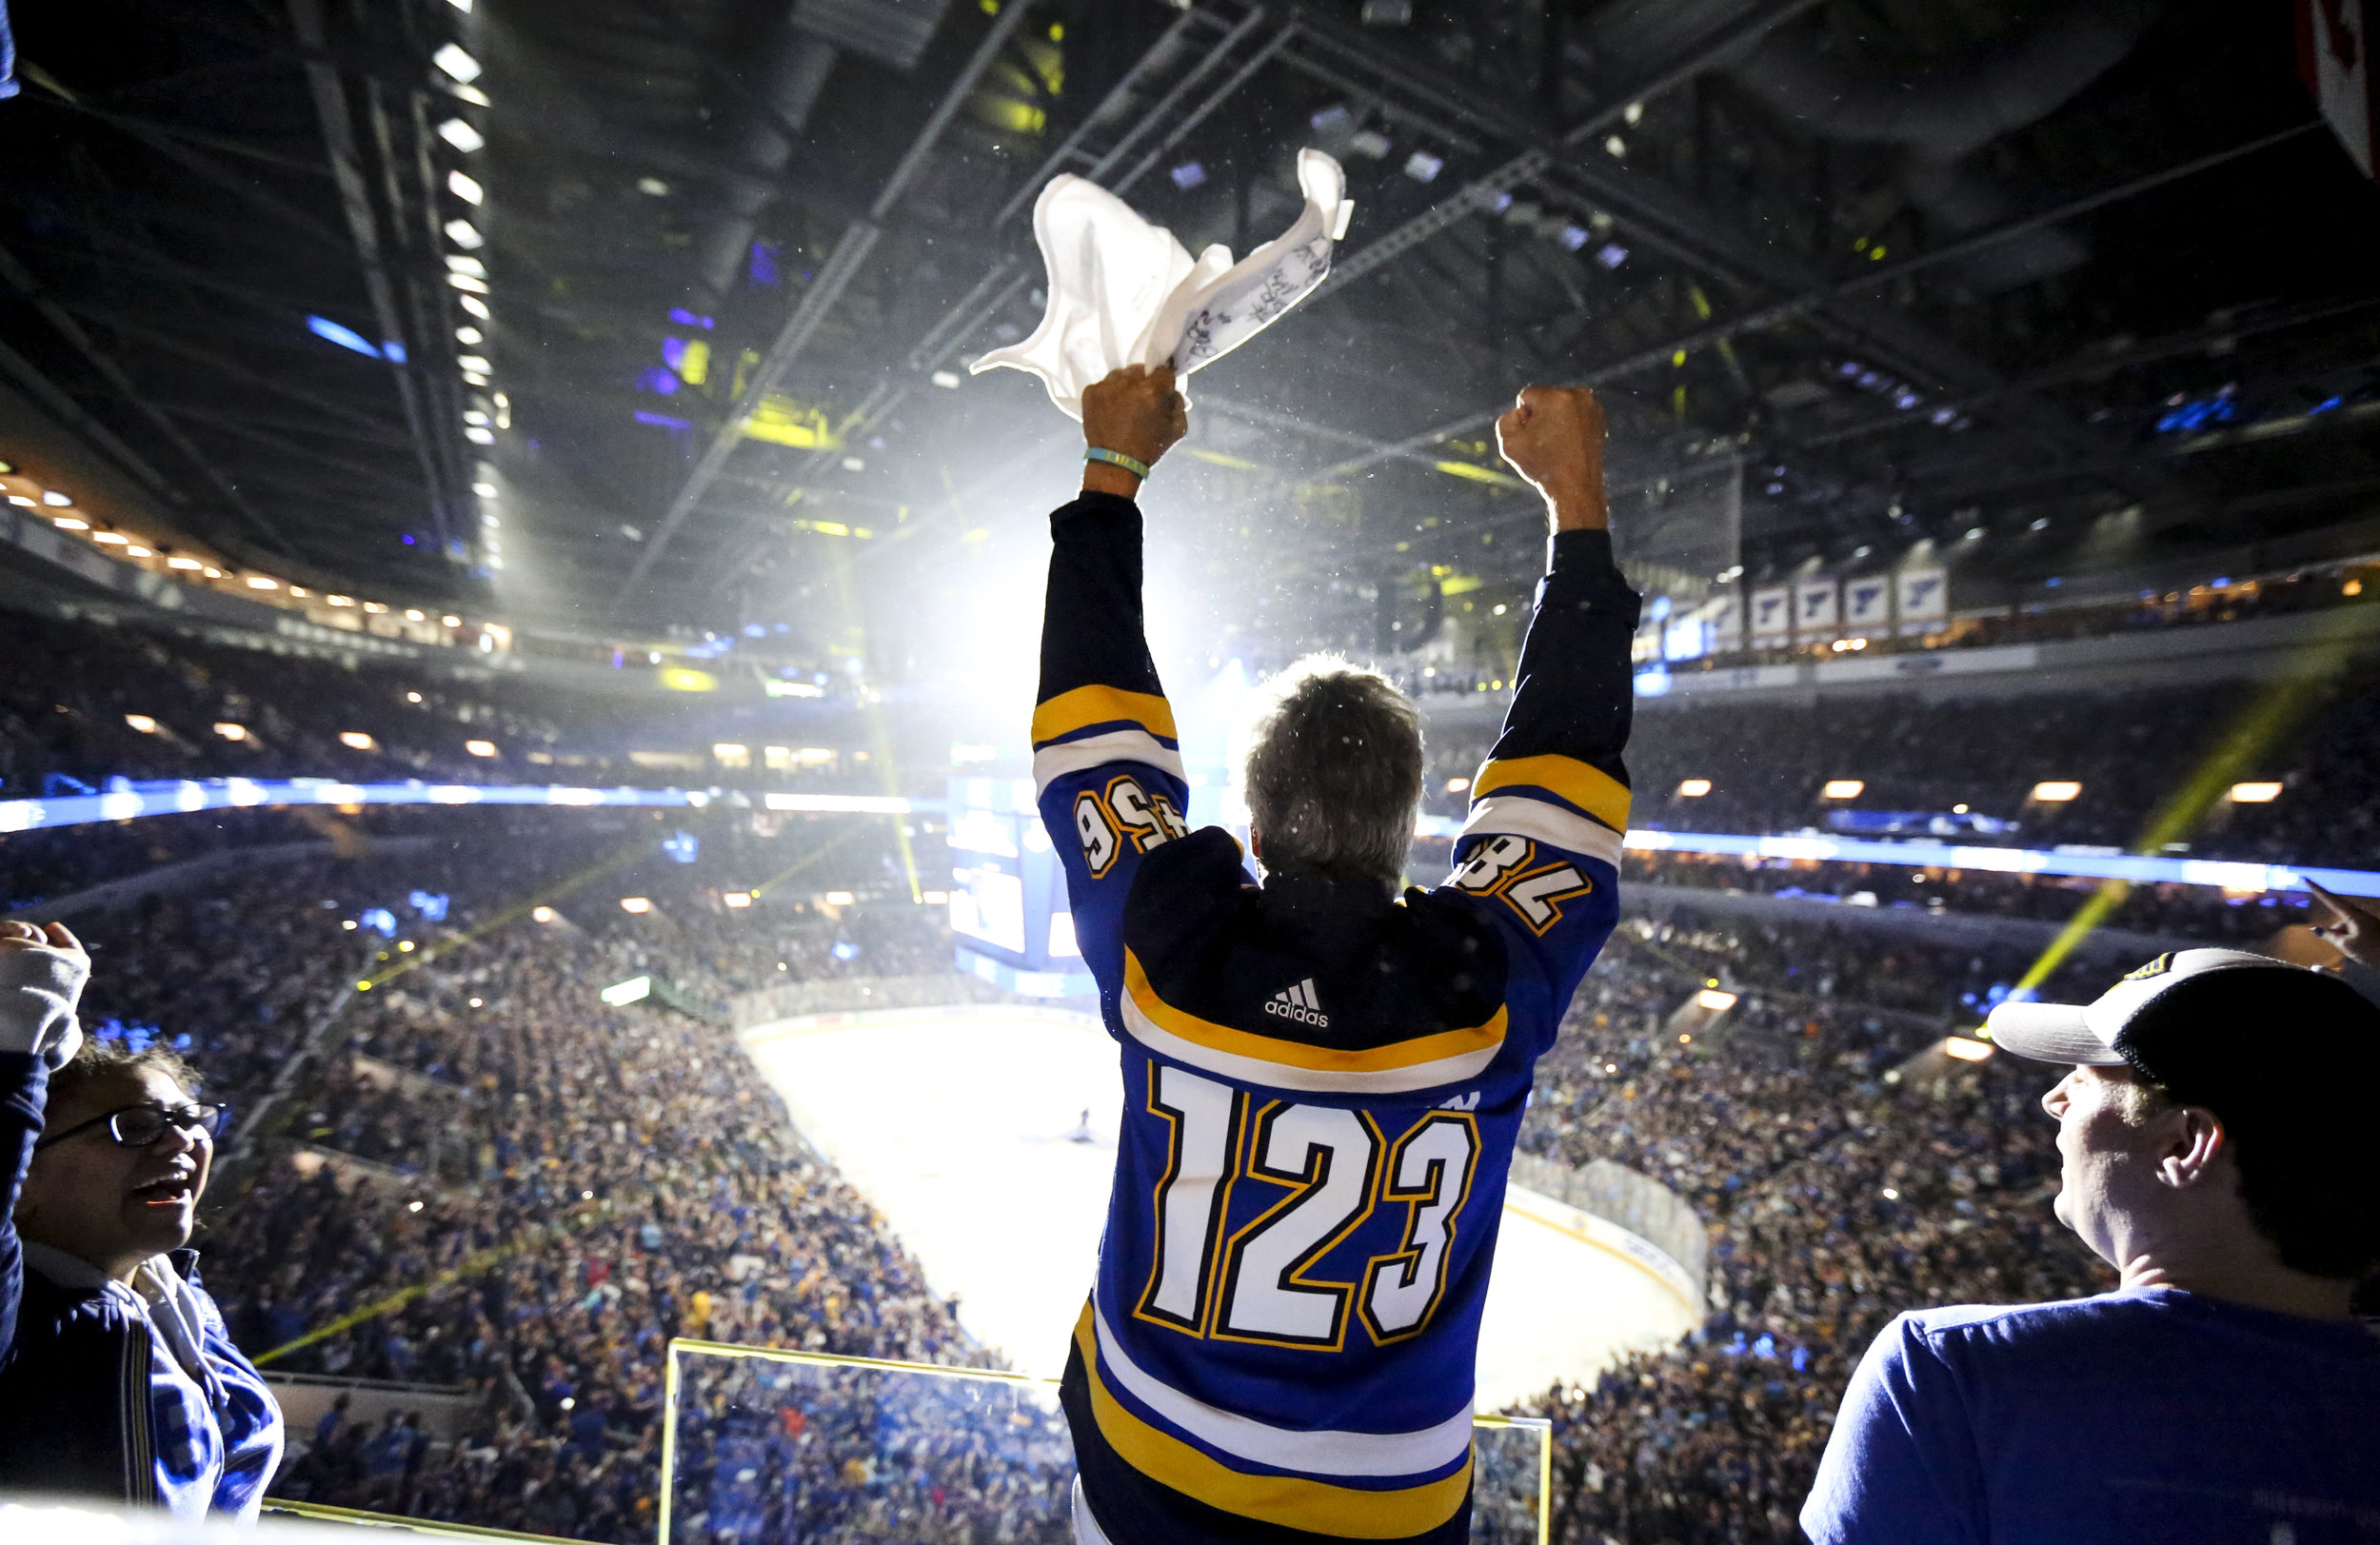 Ron Baechle AKA Towel Man stands in the spotlight after the Blues score their third goal of the night during the Stanley Cup Final Game 7 watch party on Wednesday, June 12, 2019 at the Enterprise Center.